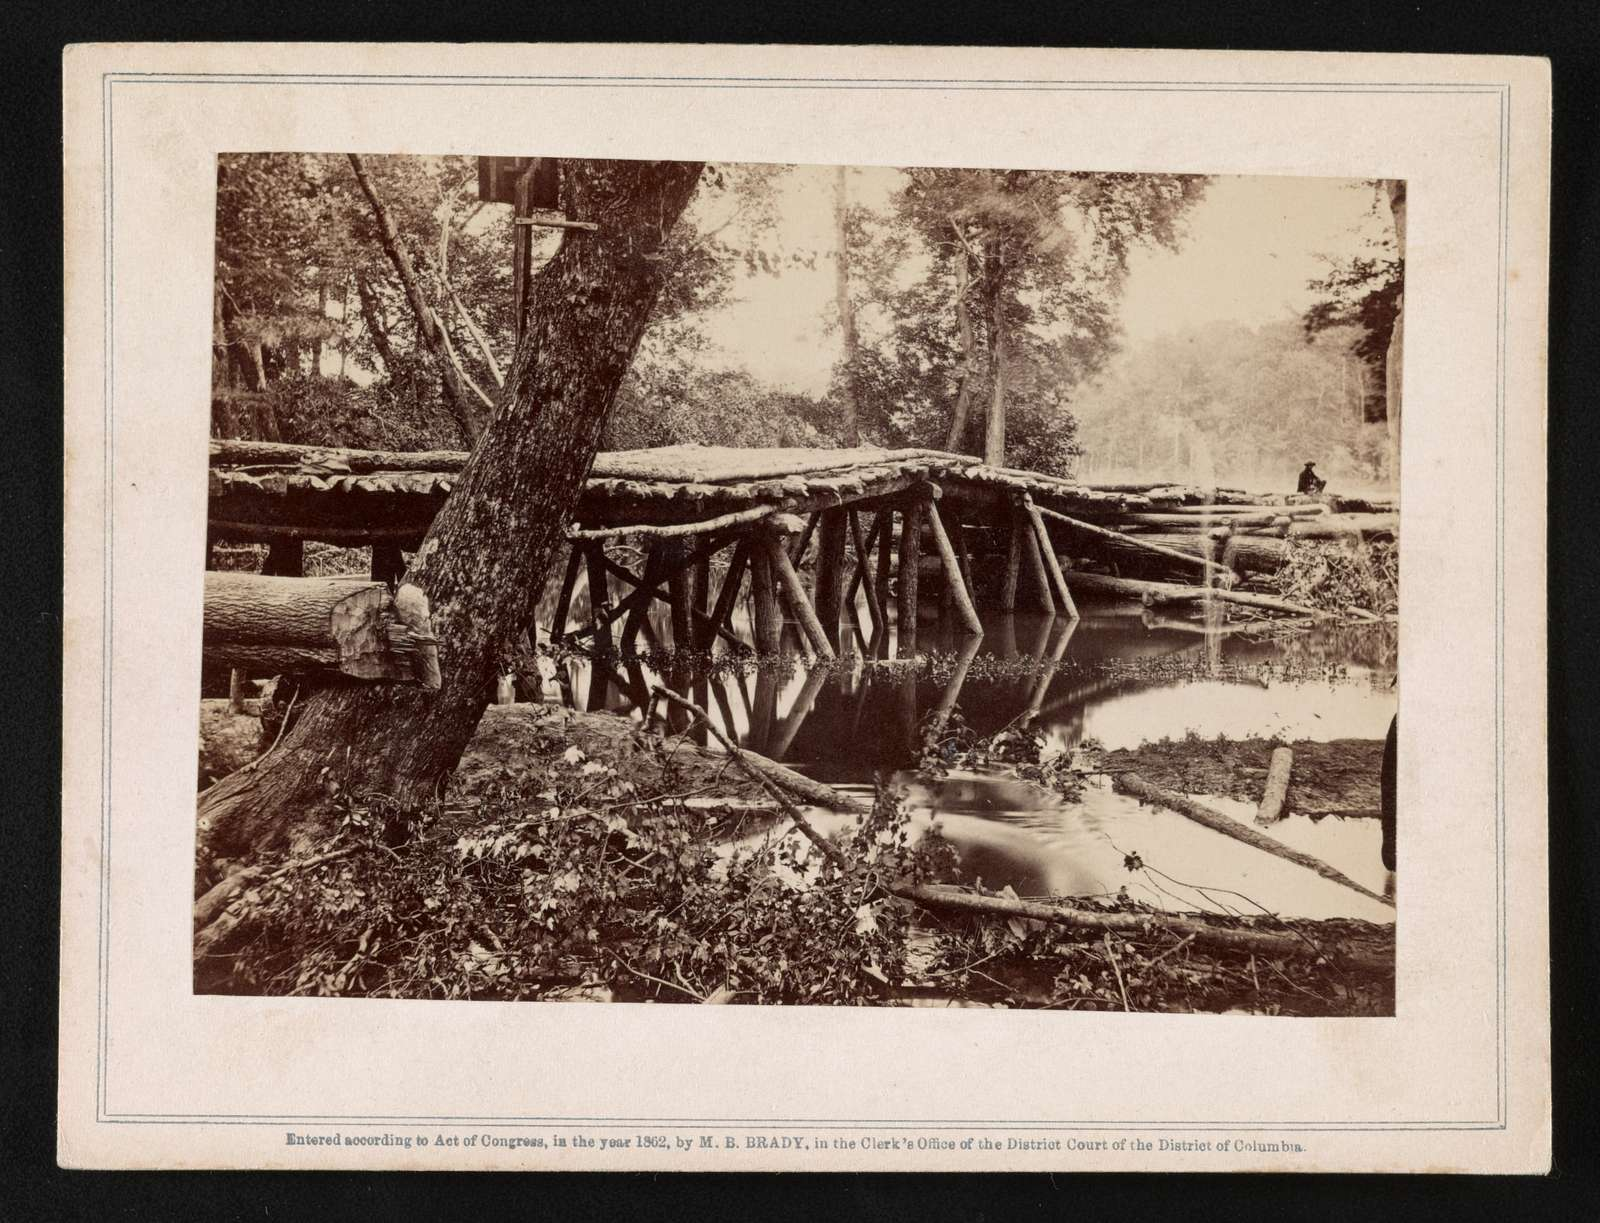 Military bridges across the Chickahominy, built by the 15th N. Y. V. Engineers, Col. Murphy